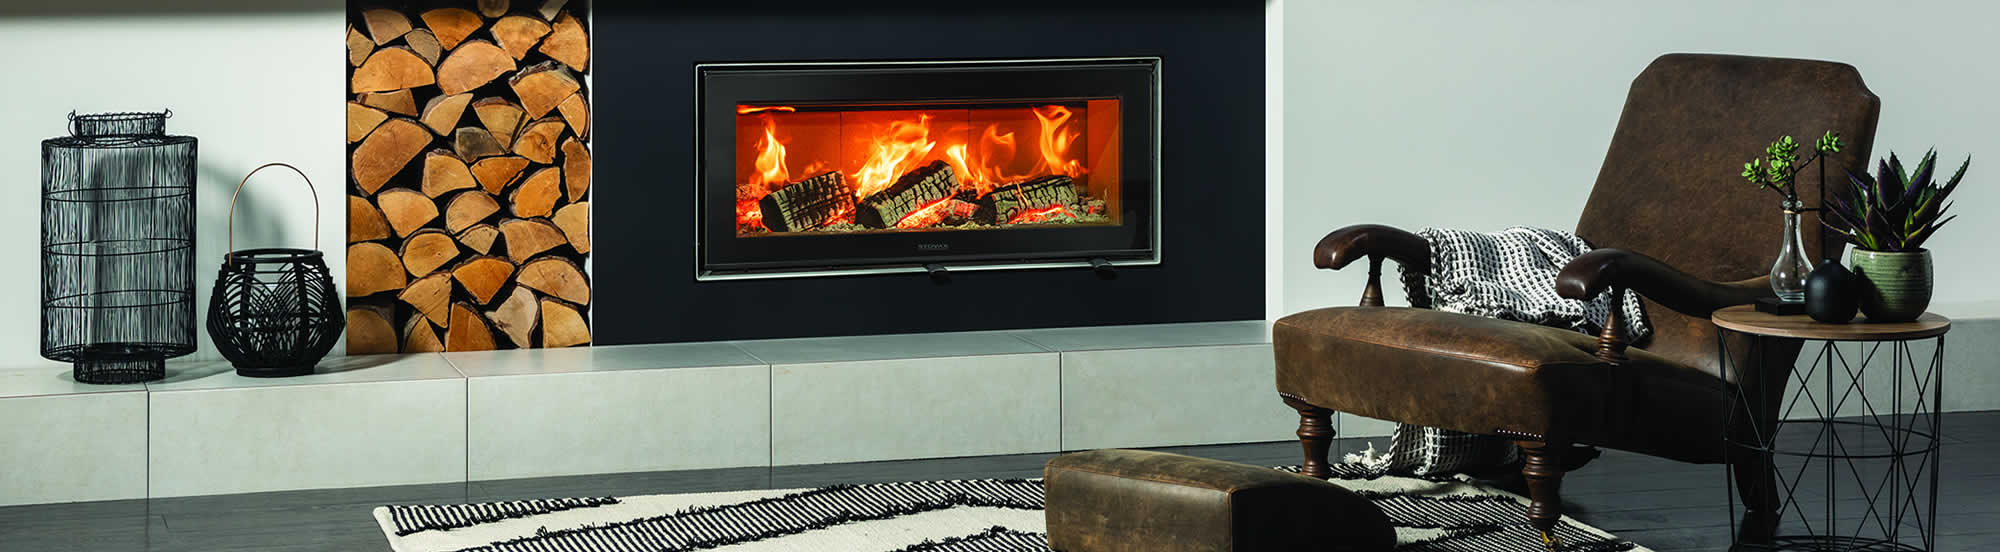 Stovax Stoves Canterbury | Fireplace Shop Canterbury